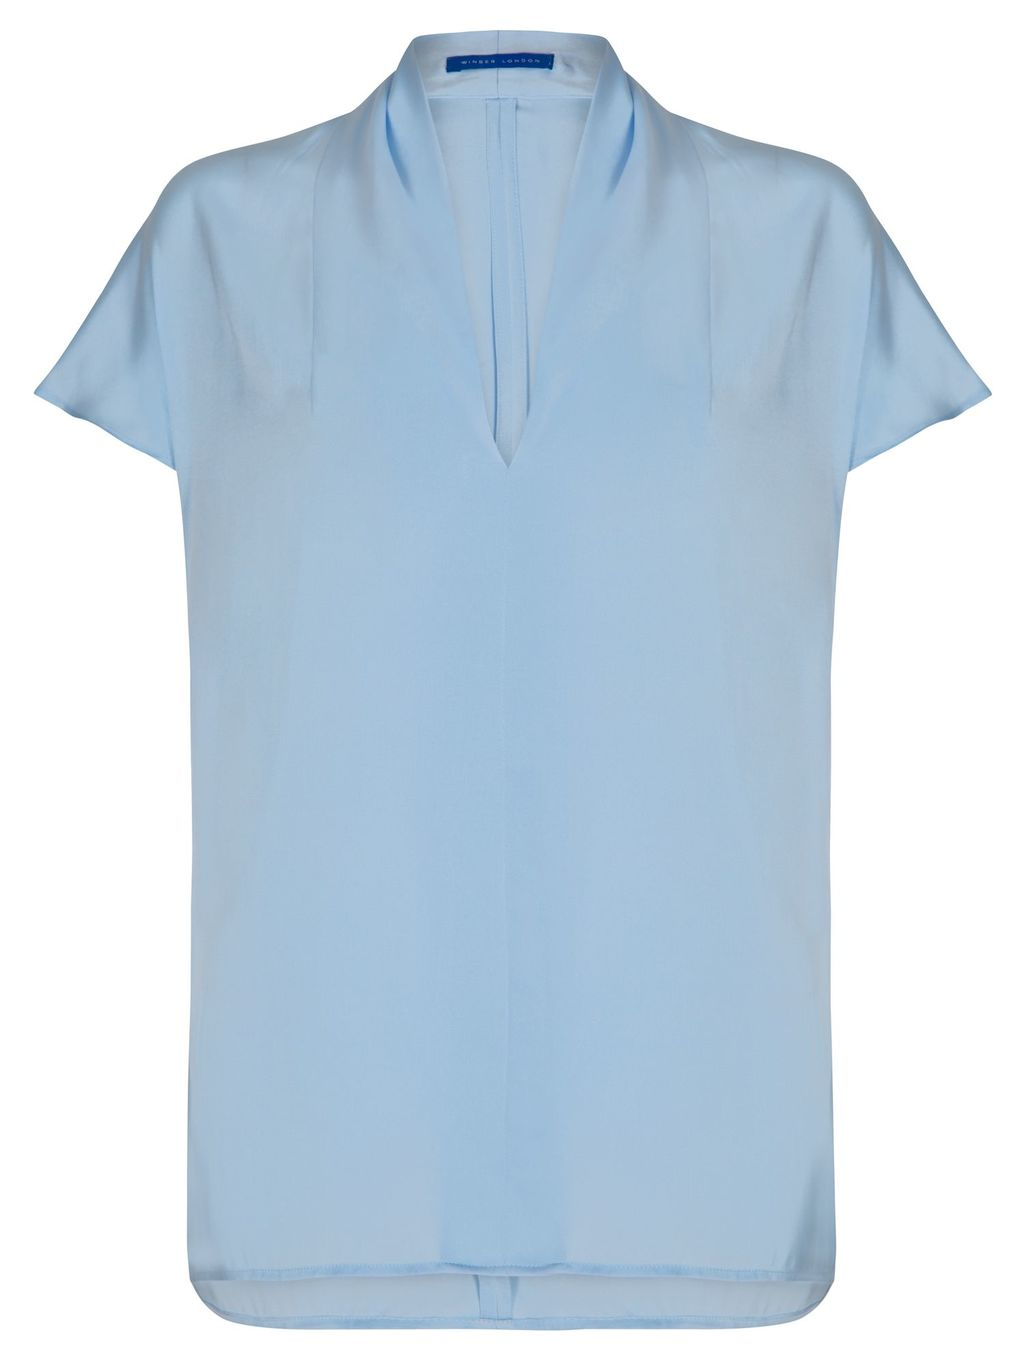 V Neck Silk Top, Blue - sleeve style: capped; pattern: plain; neckline: high neck; predominant colour: pale blue; occasions: casual, work, creative work; length: standard; style: top; fibres: silk - mix; fit: straight cut; sleeve length: short sleeve; texture group: silky - light; pattern type: fabric; season: s/s 2016; wardrobe: highlight